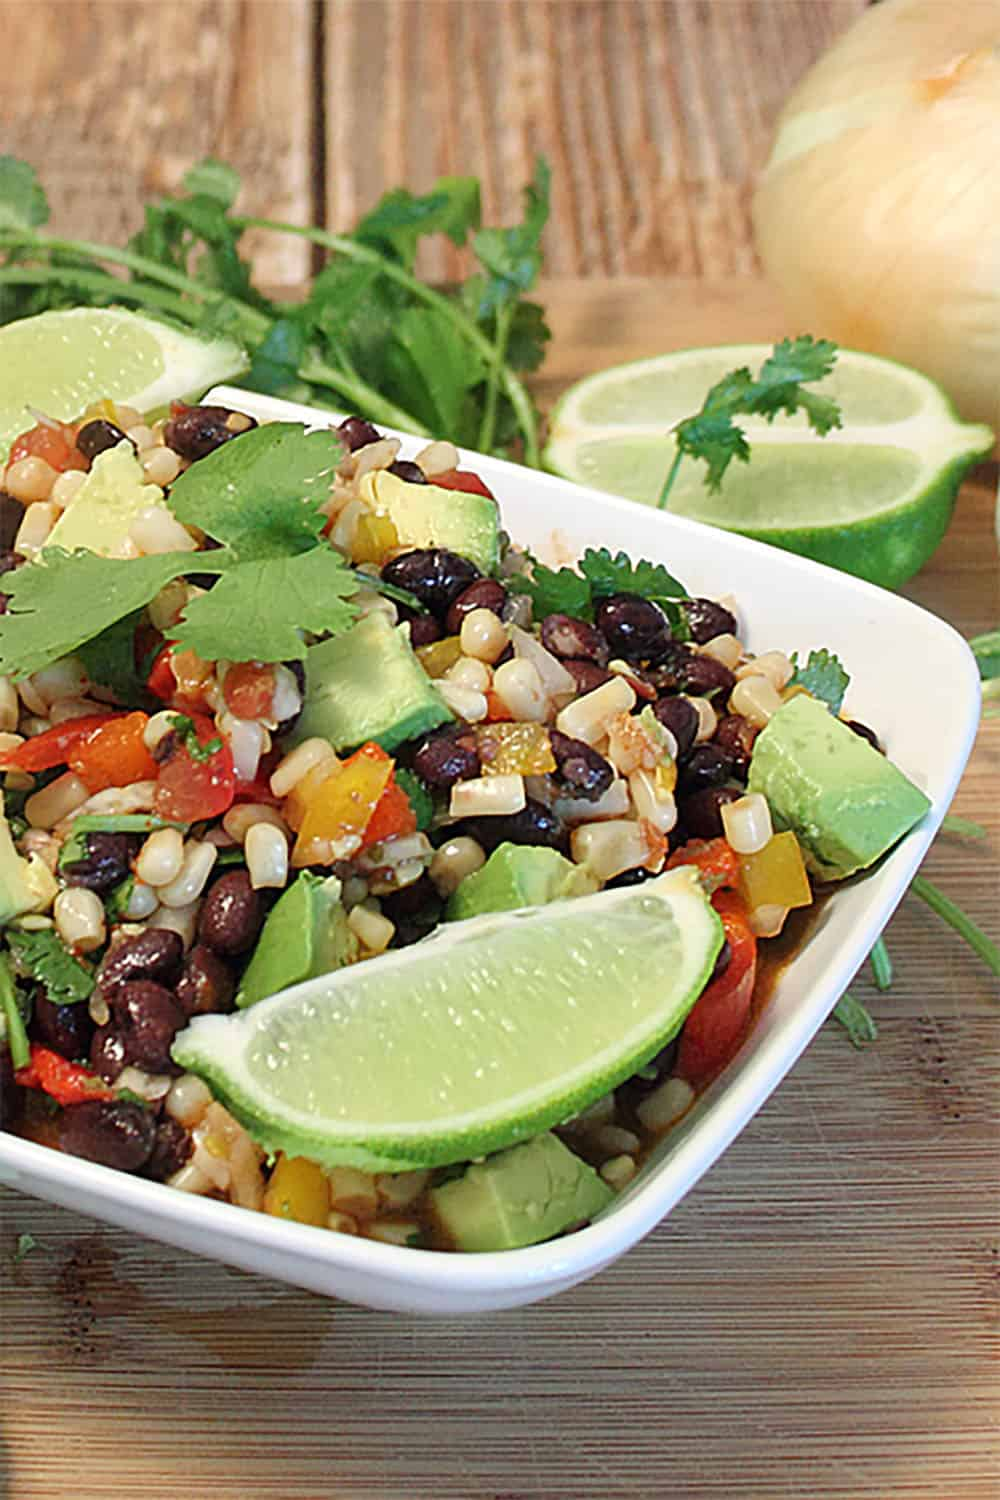 Black Bean Salad in white bowl garnished with limes and cilantro.